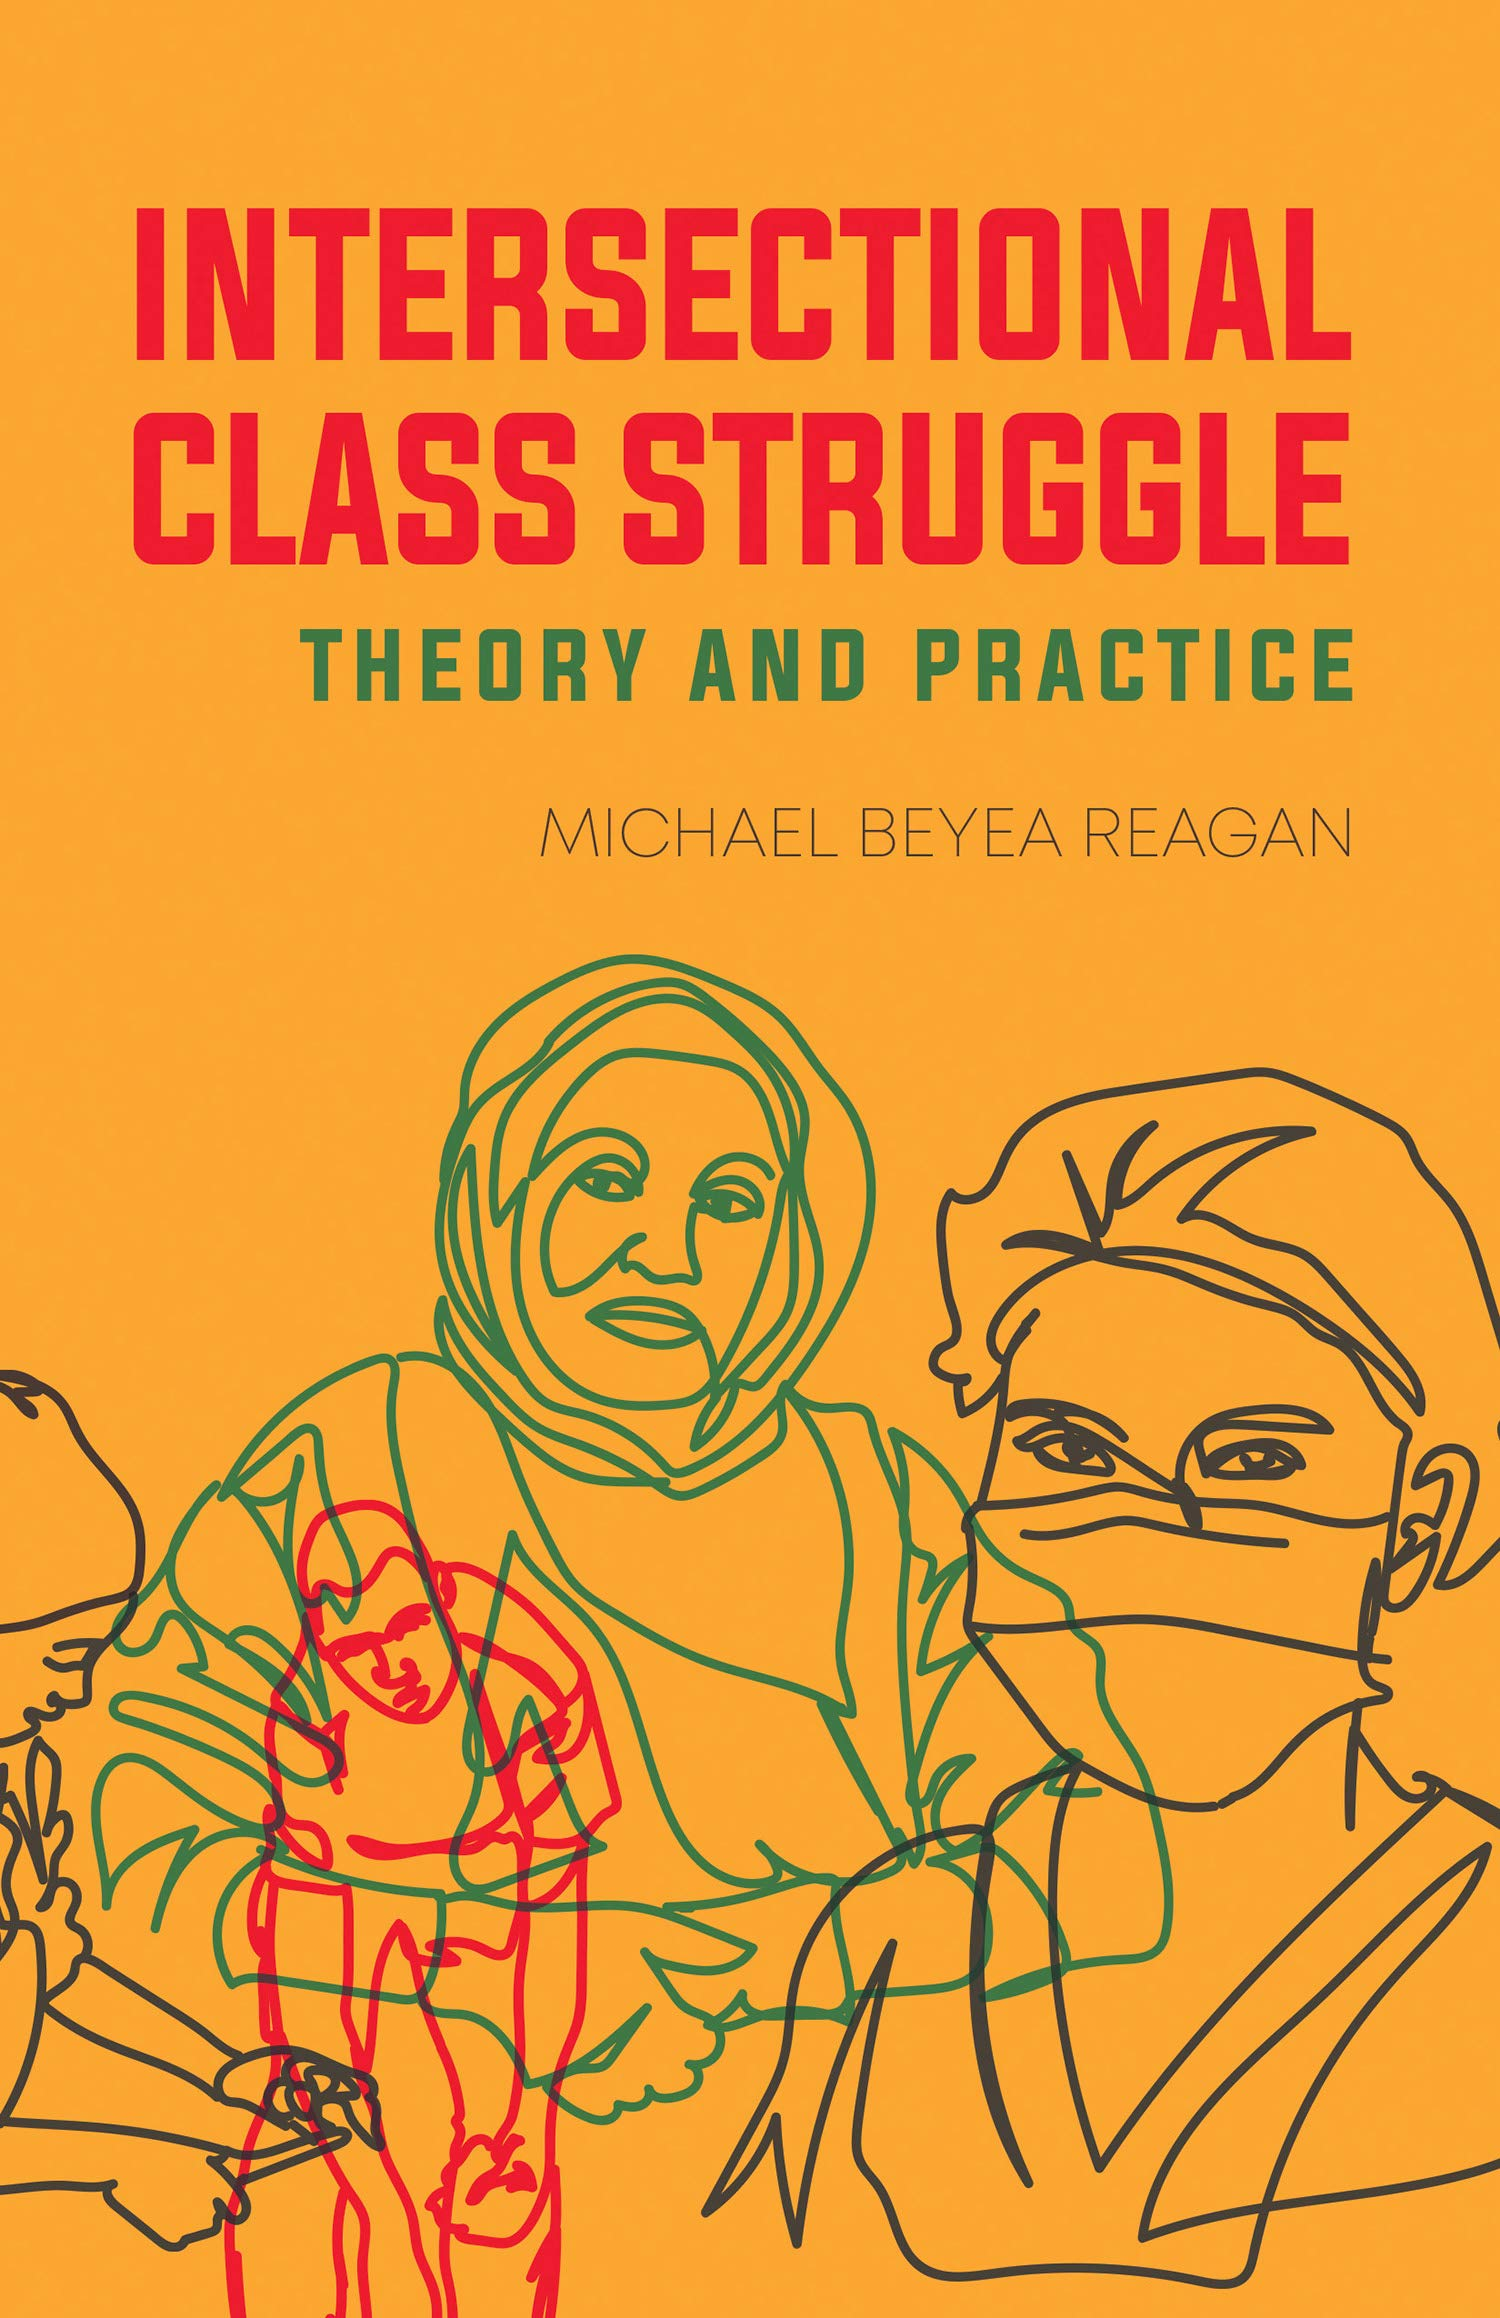 Michael Beyea Reagan: Intersectional Class Struggle - Theory and Practice